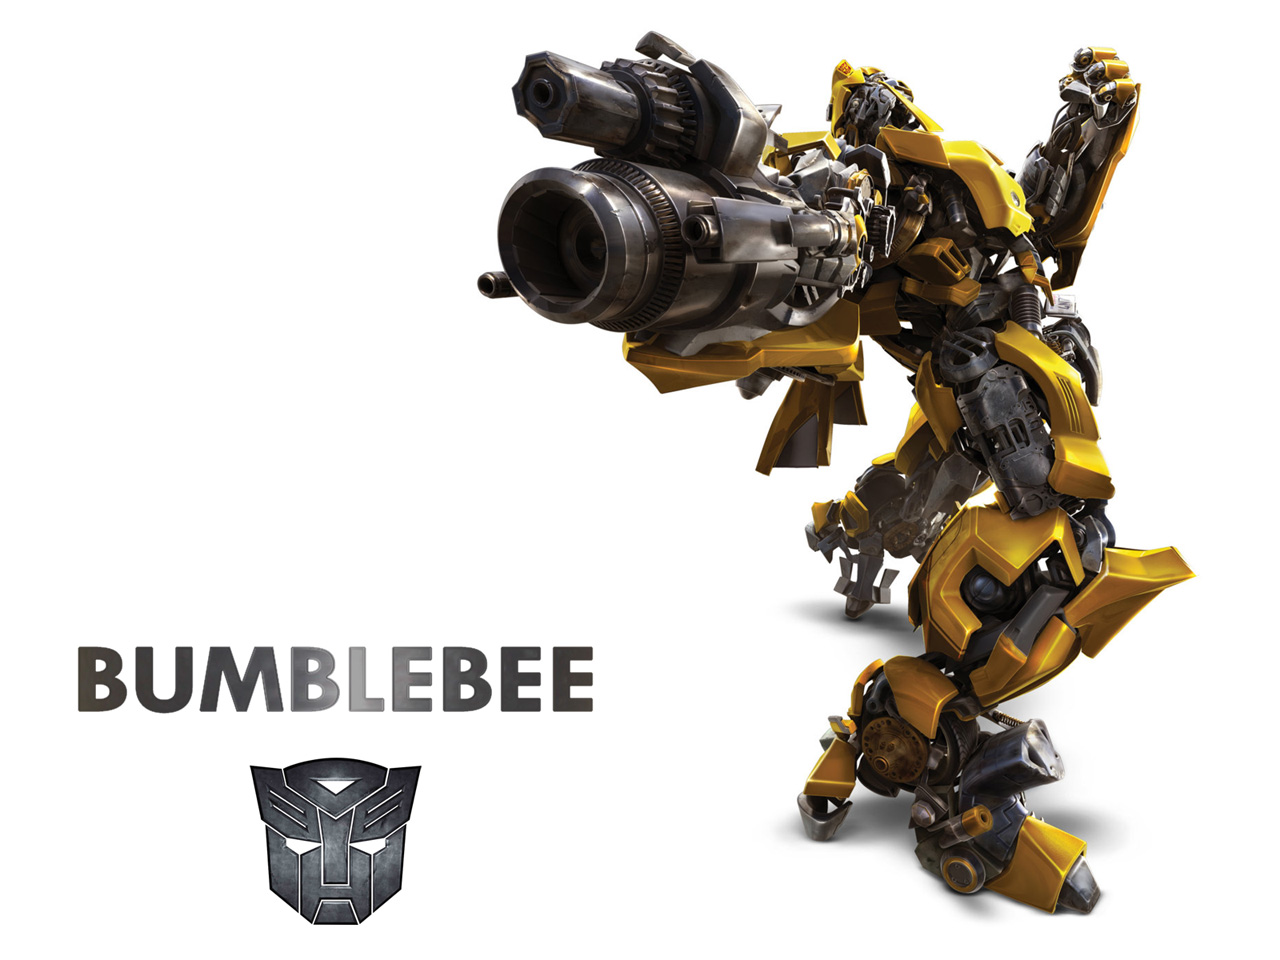 Best Bumblebee Wallpaper in Transformers   New Best Wallpapers 2016